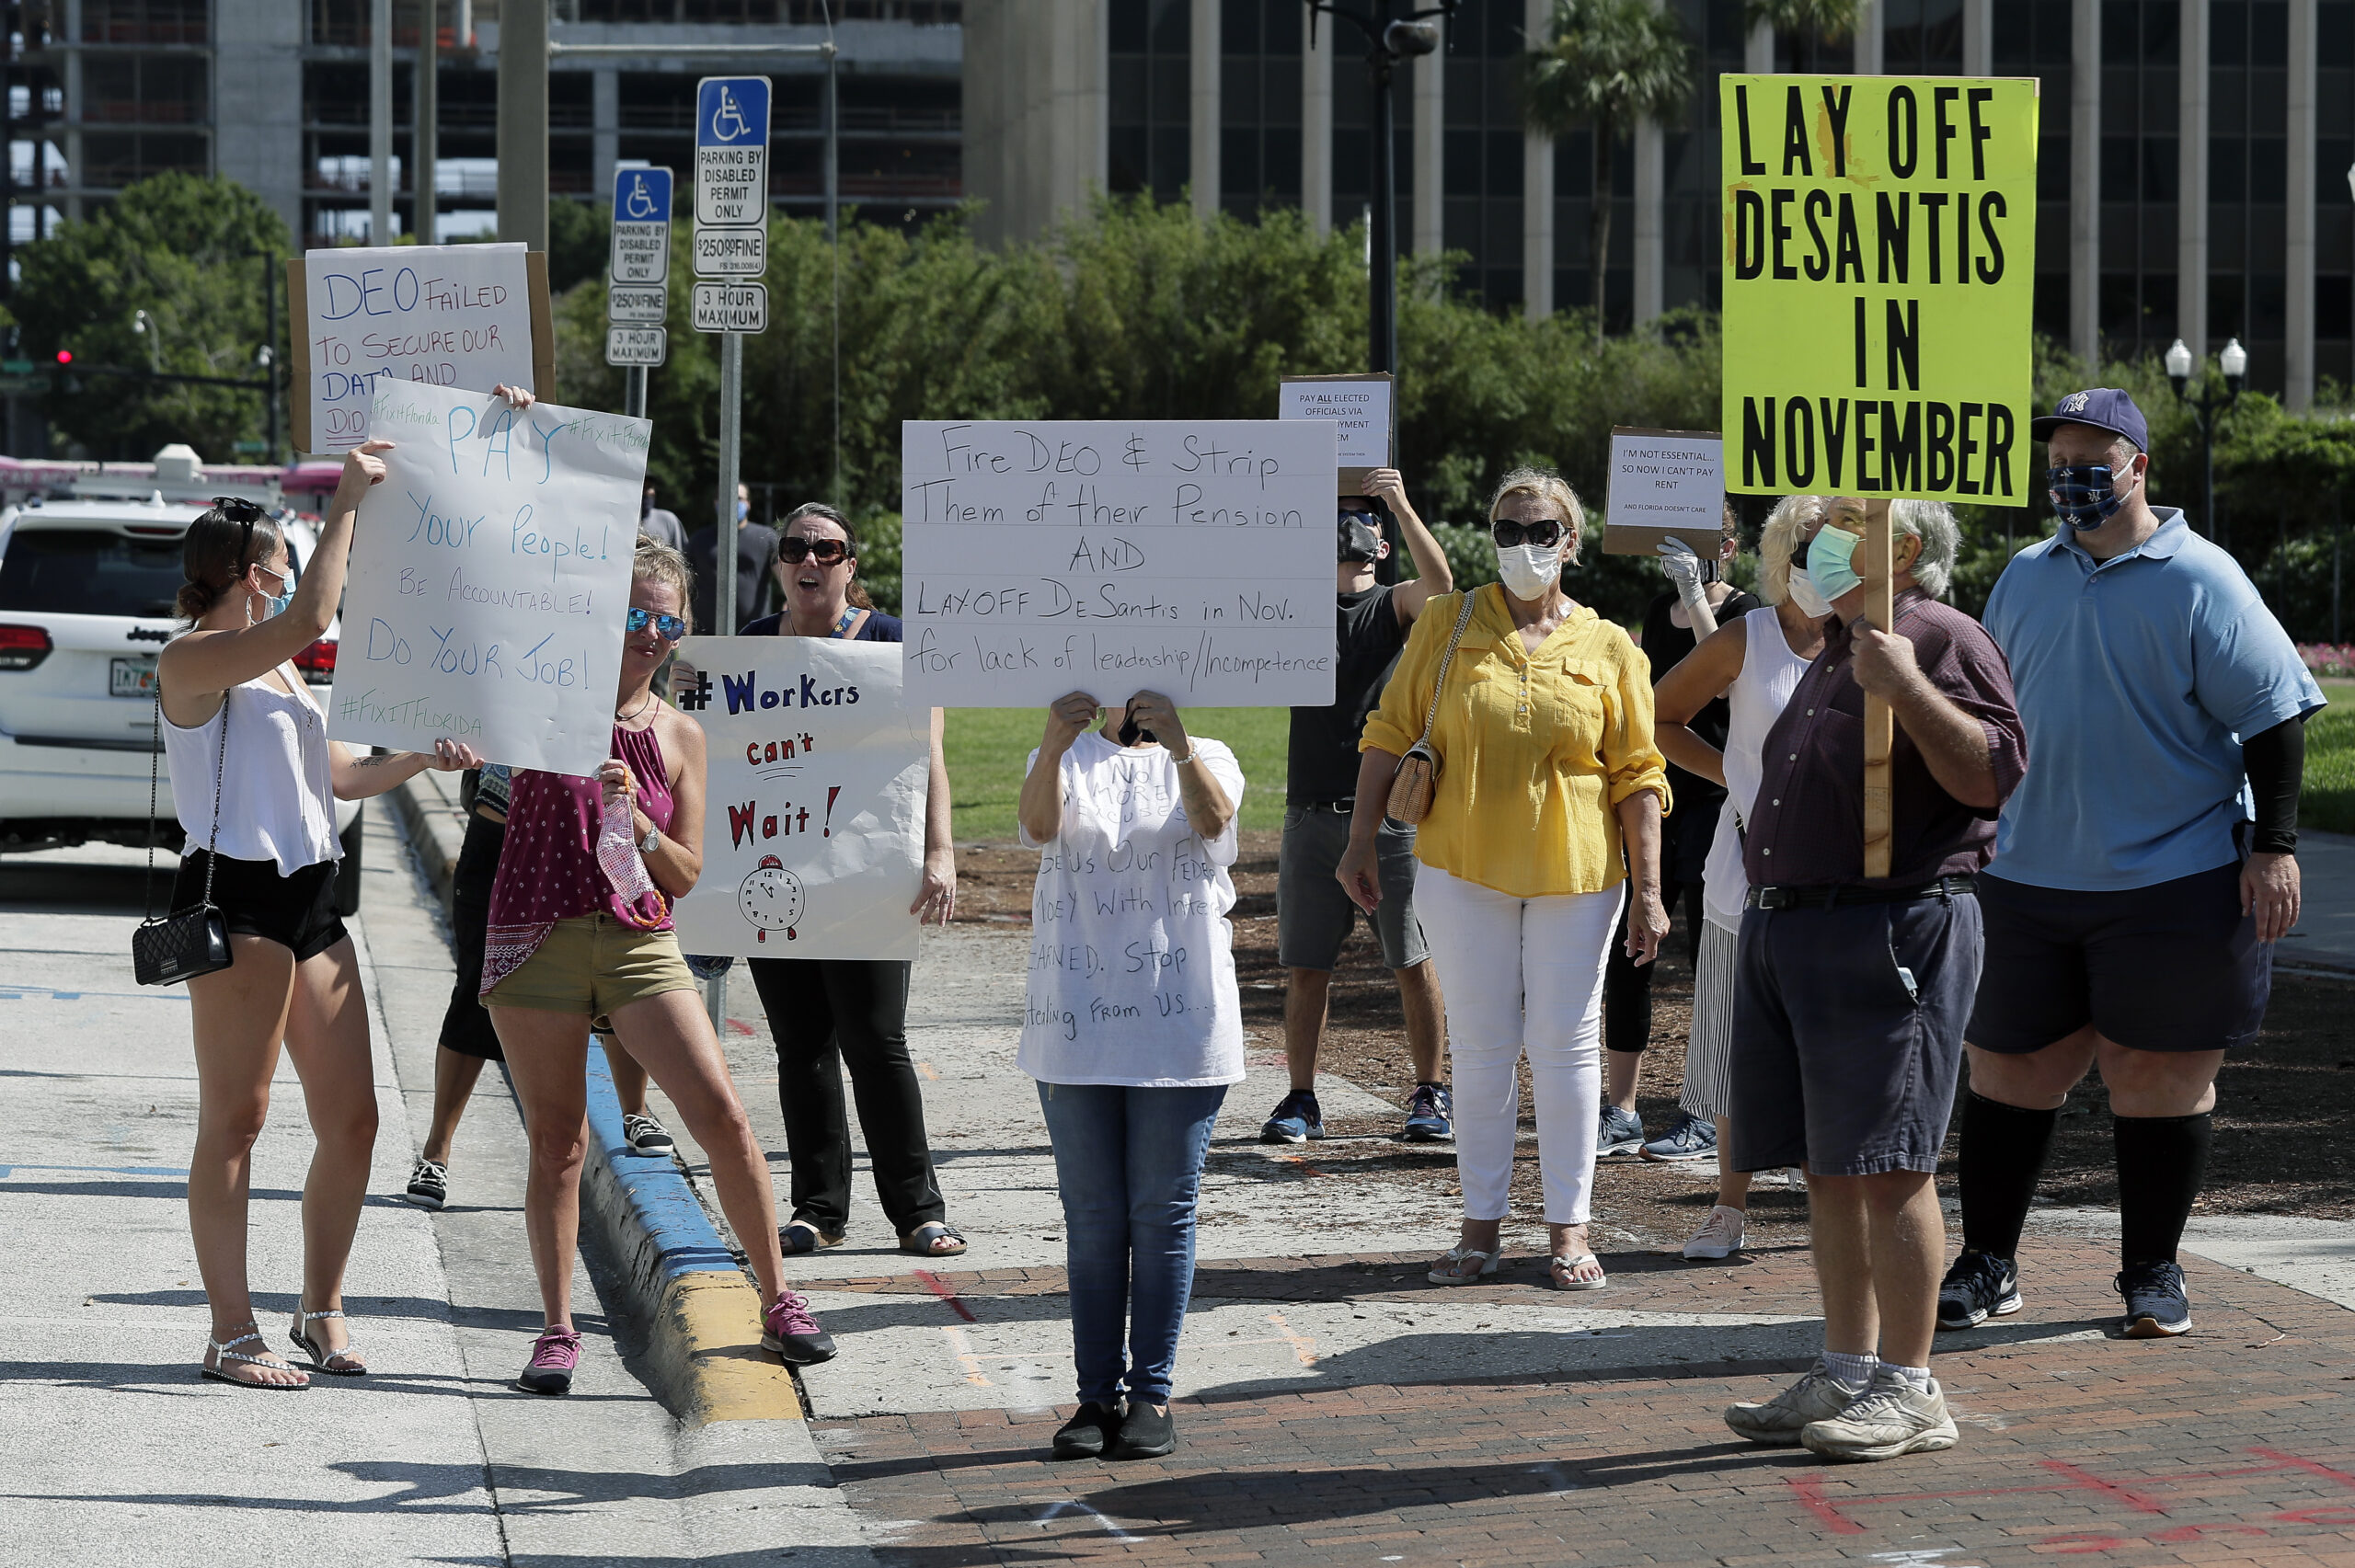 wmnf-florida-unions-say-ending-federal-unemployment-will-pull-800-million-out-of-floridas-economy-and-urge-the-governor-to-change-course